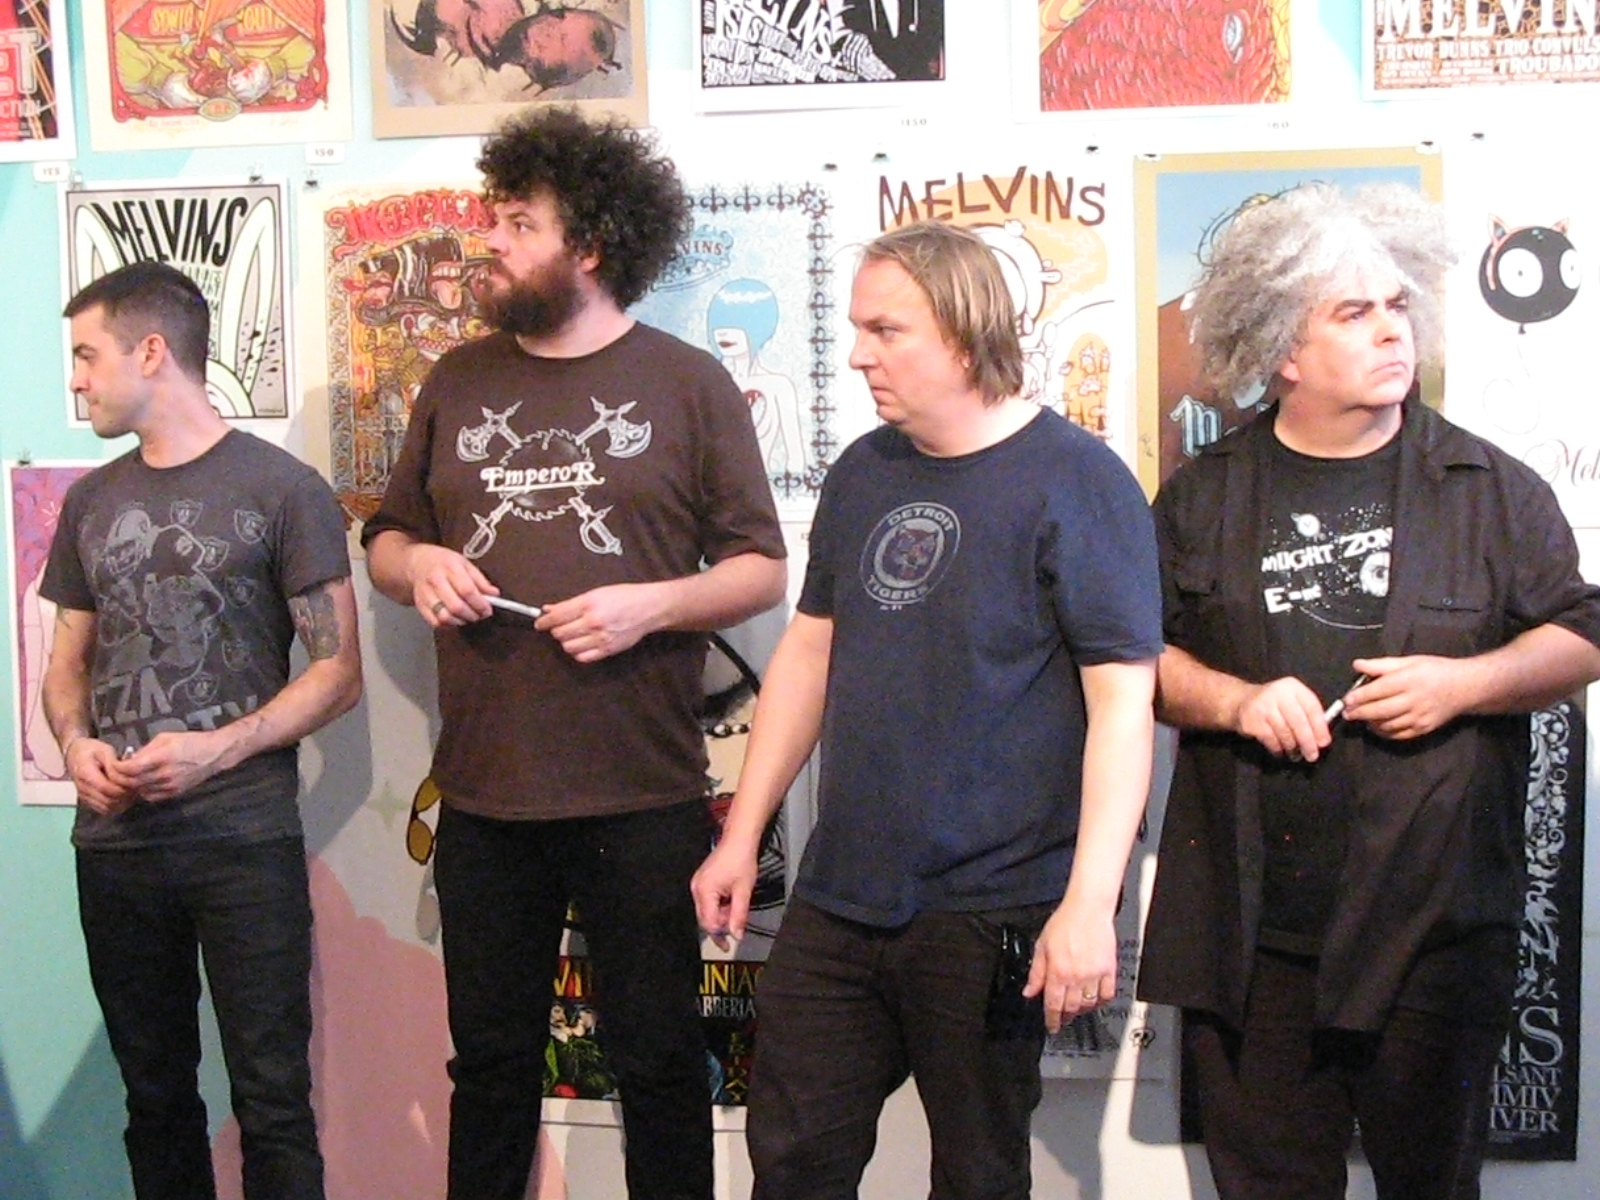 Tickets for MELVINS in Rock Island from MIDWESTIX